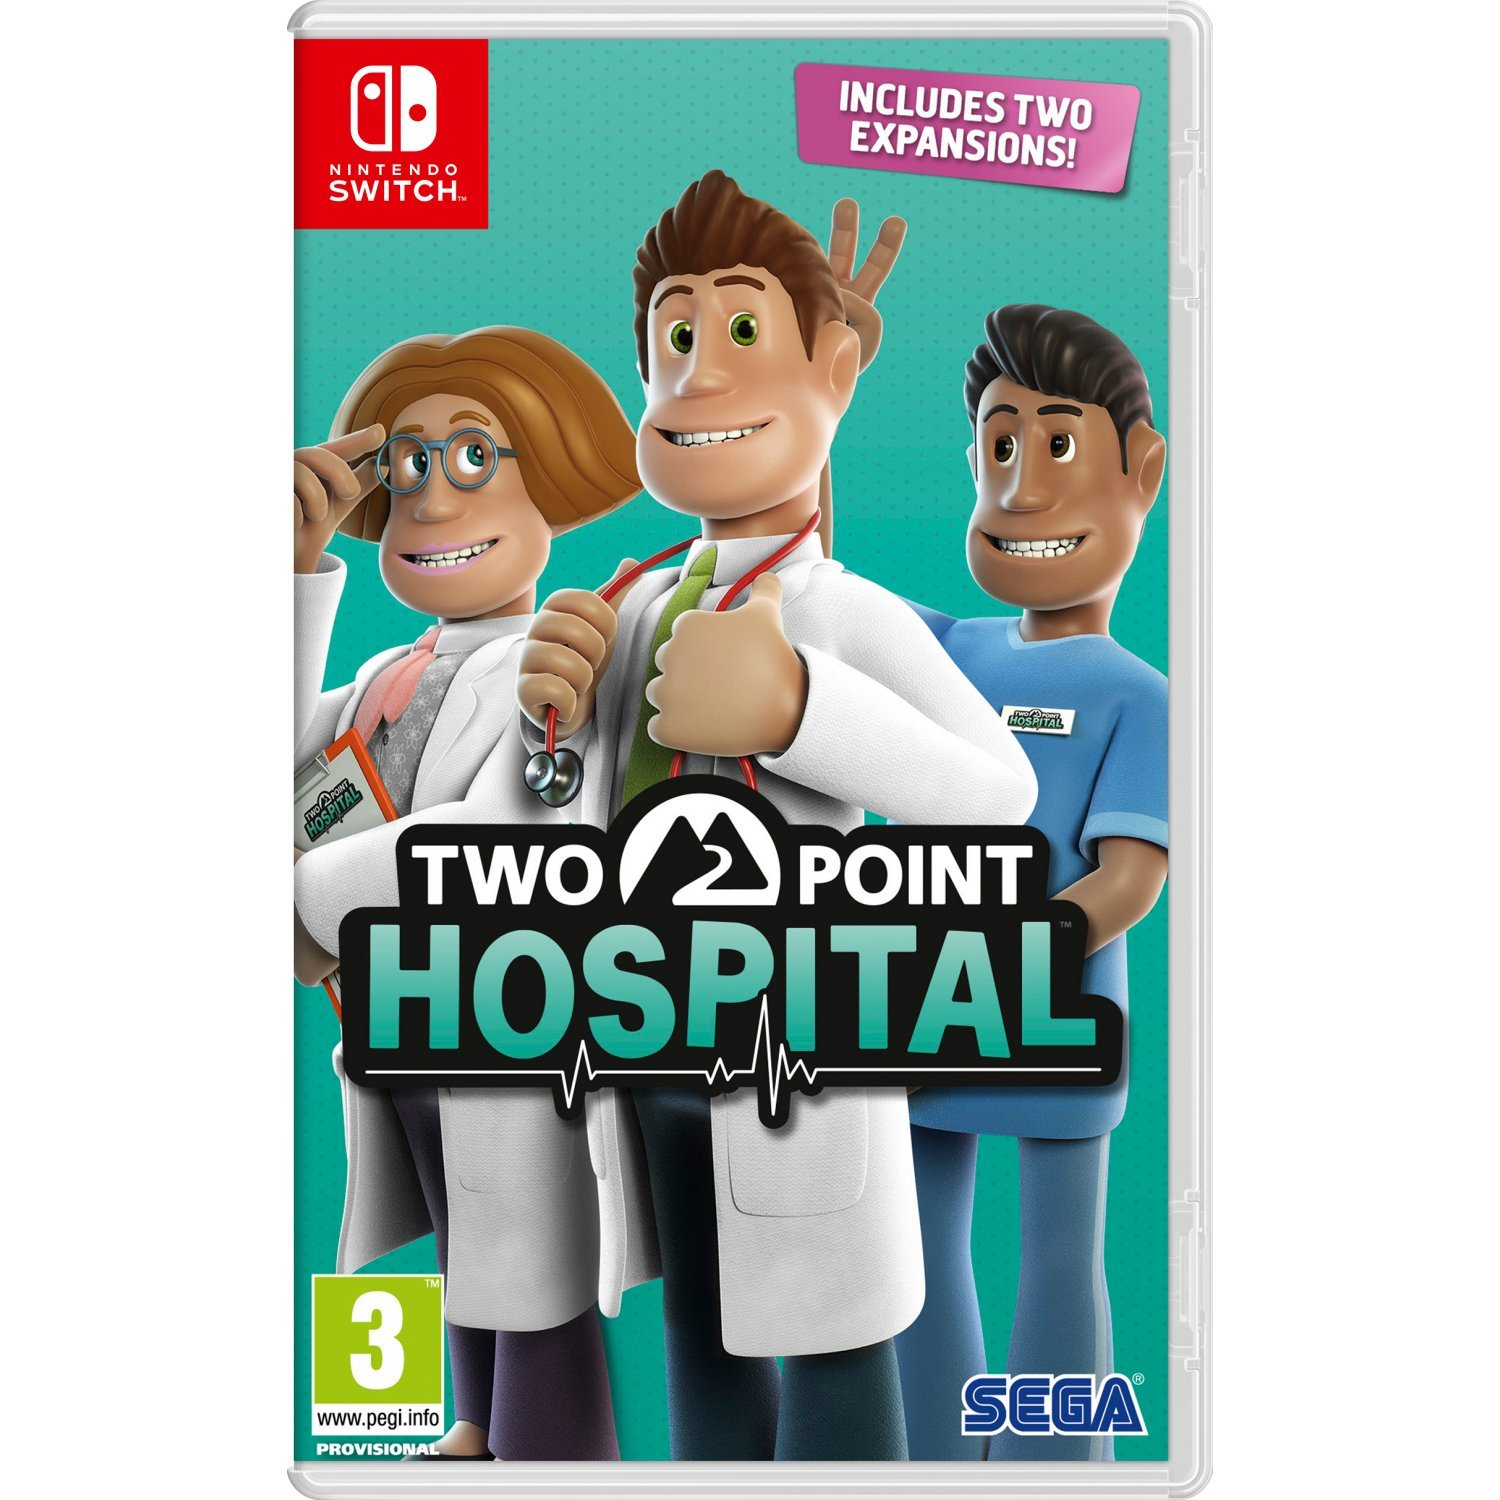 two-point-hospital-601837.7.jpg